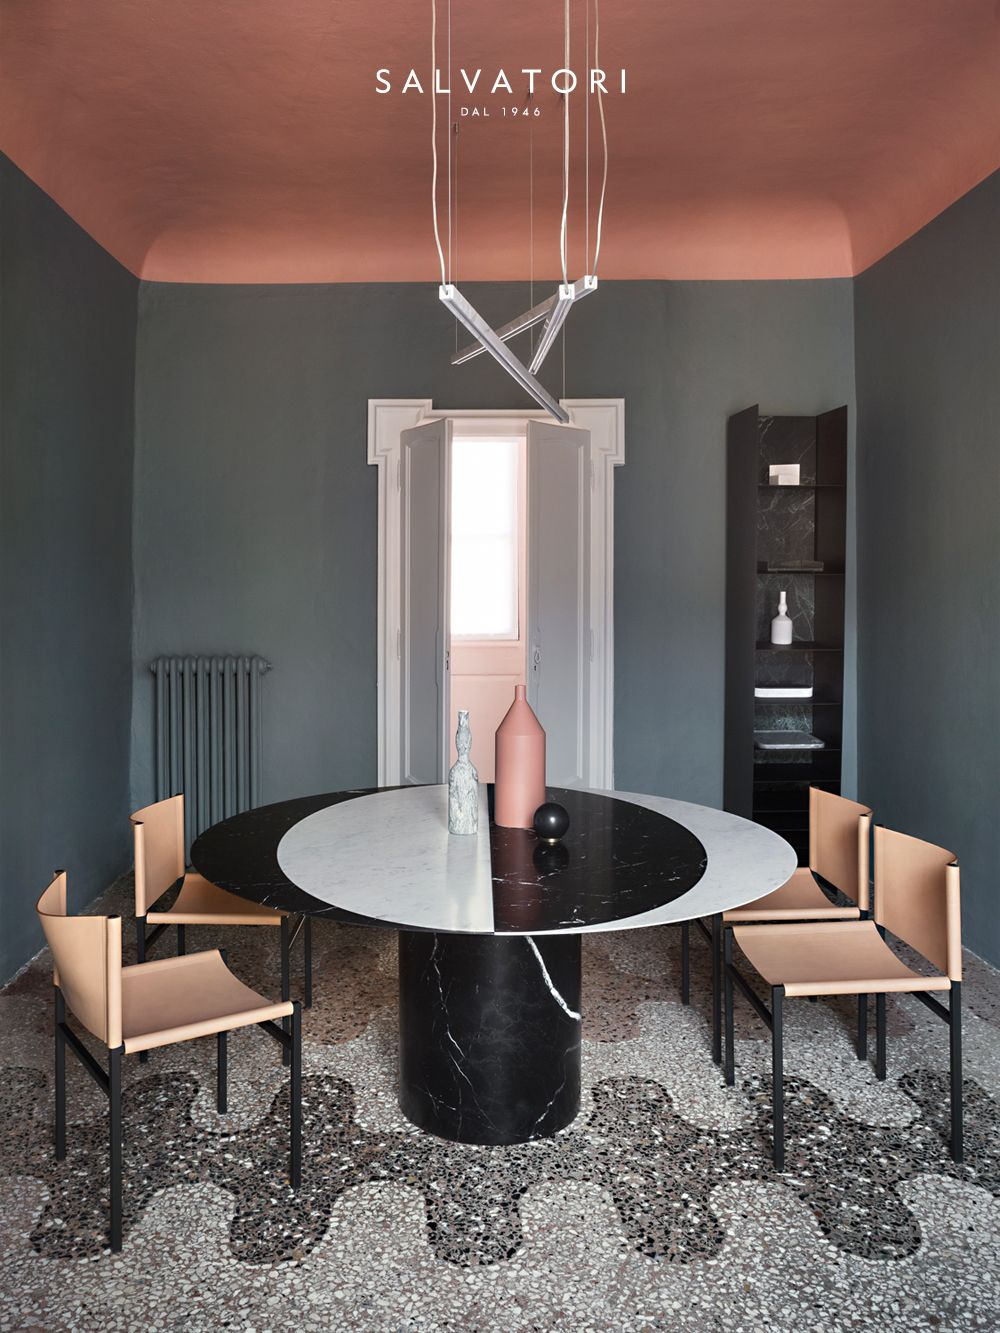 Color home interior design decorating styles decor trends room also best terracotta images in rh pinterest